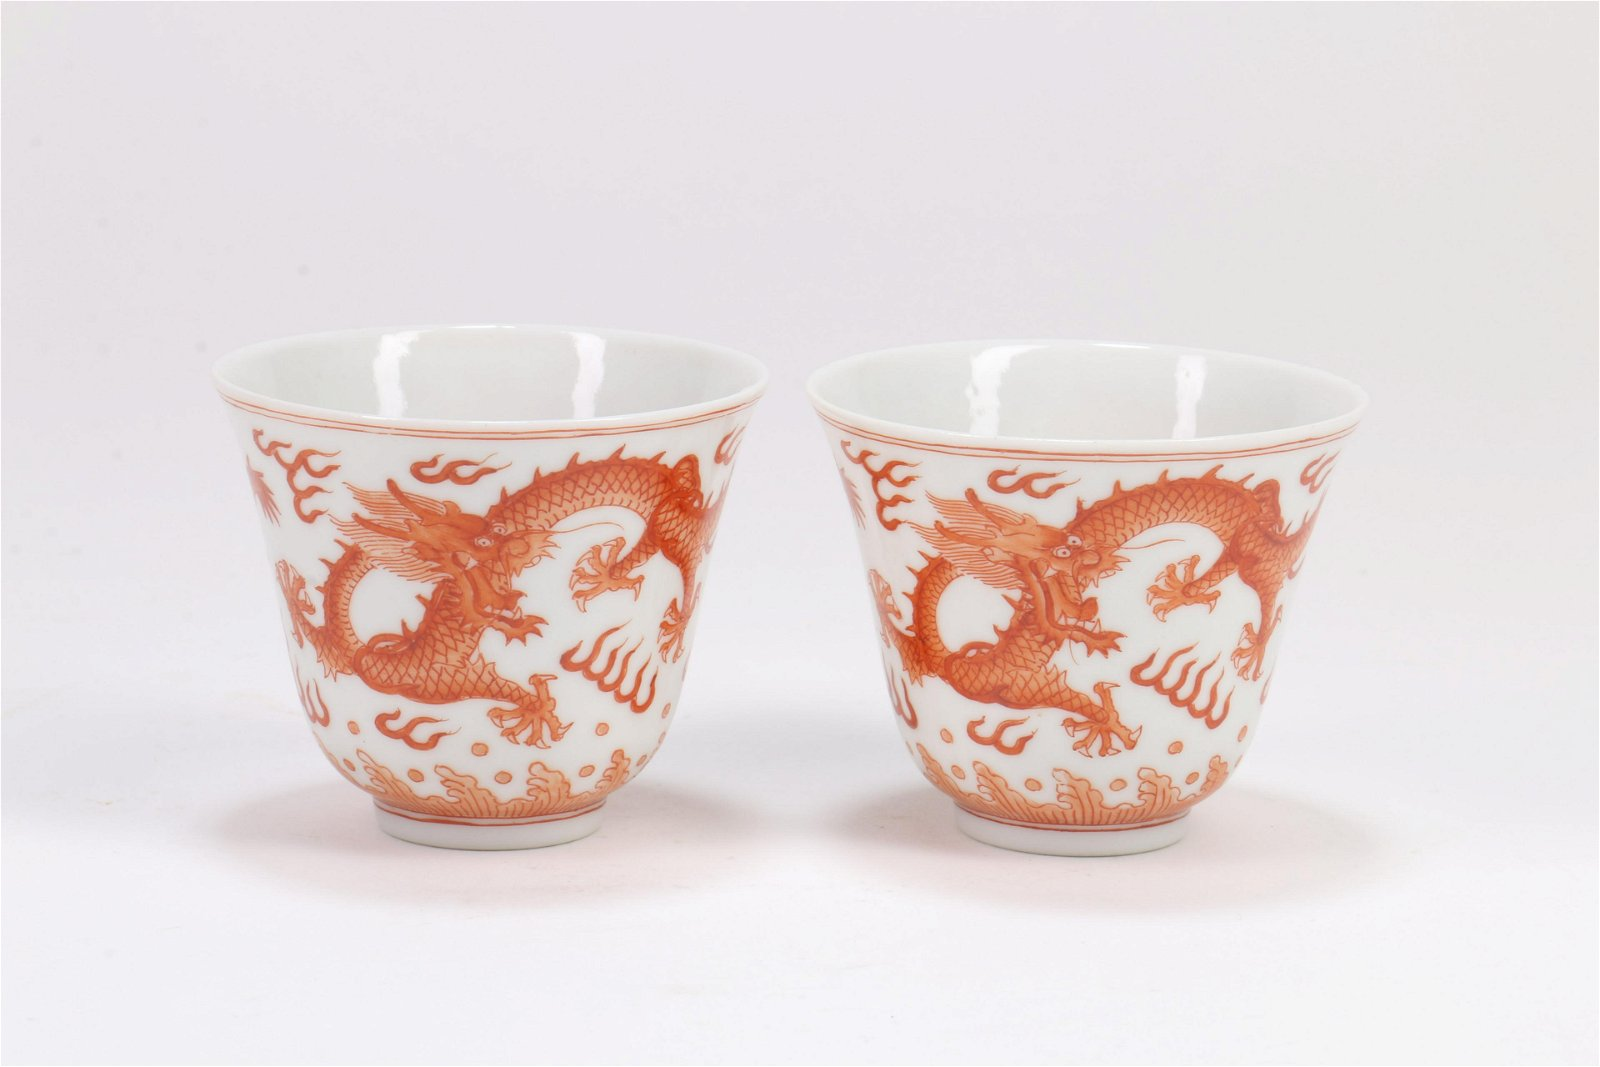 A Pair of Chinese Iron-Red Porcelain Cups